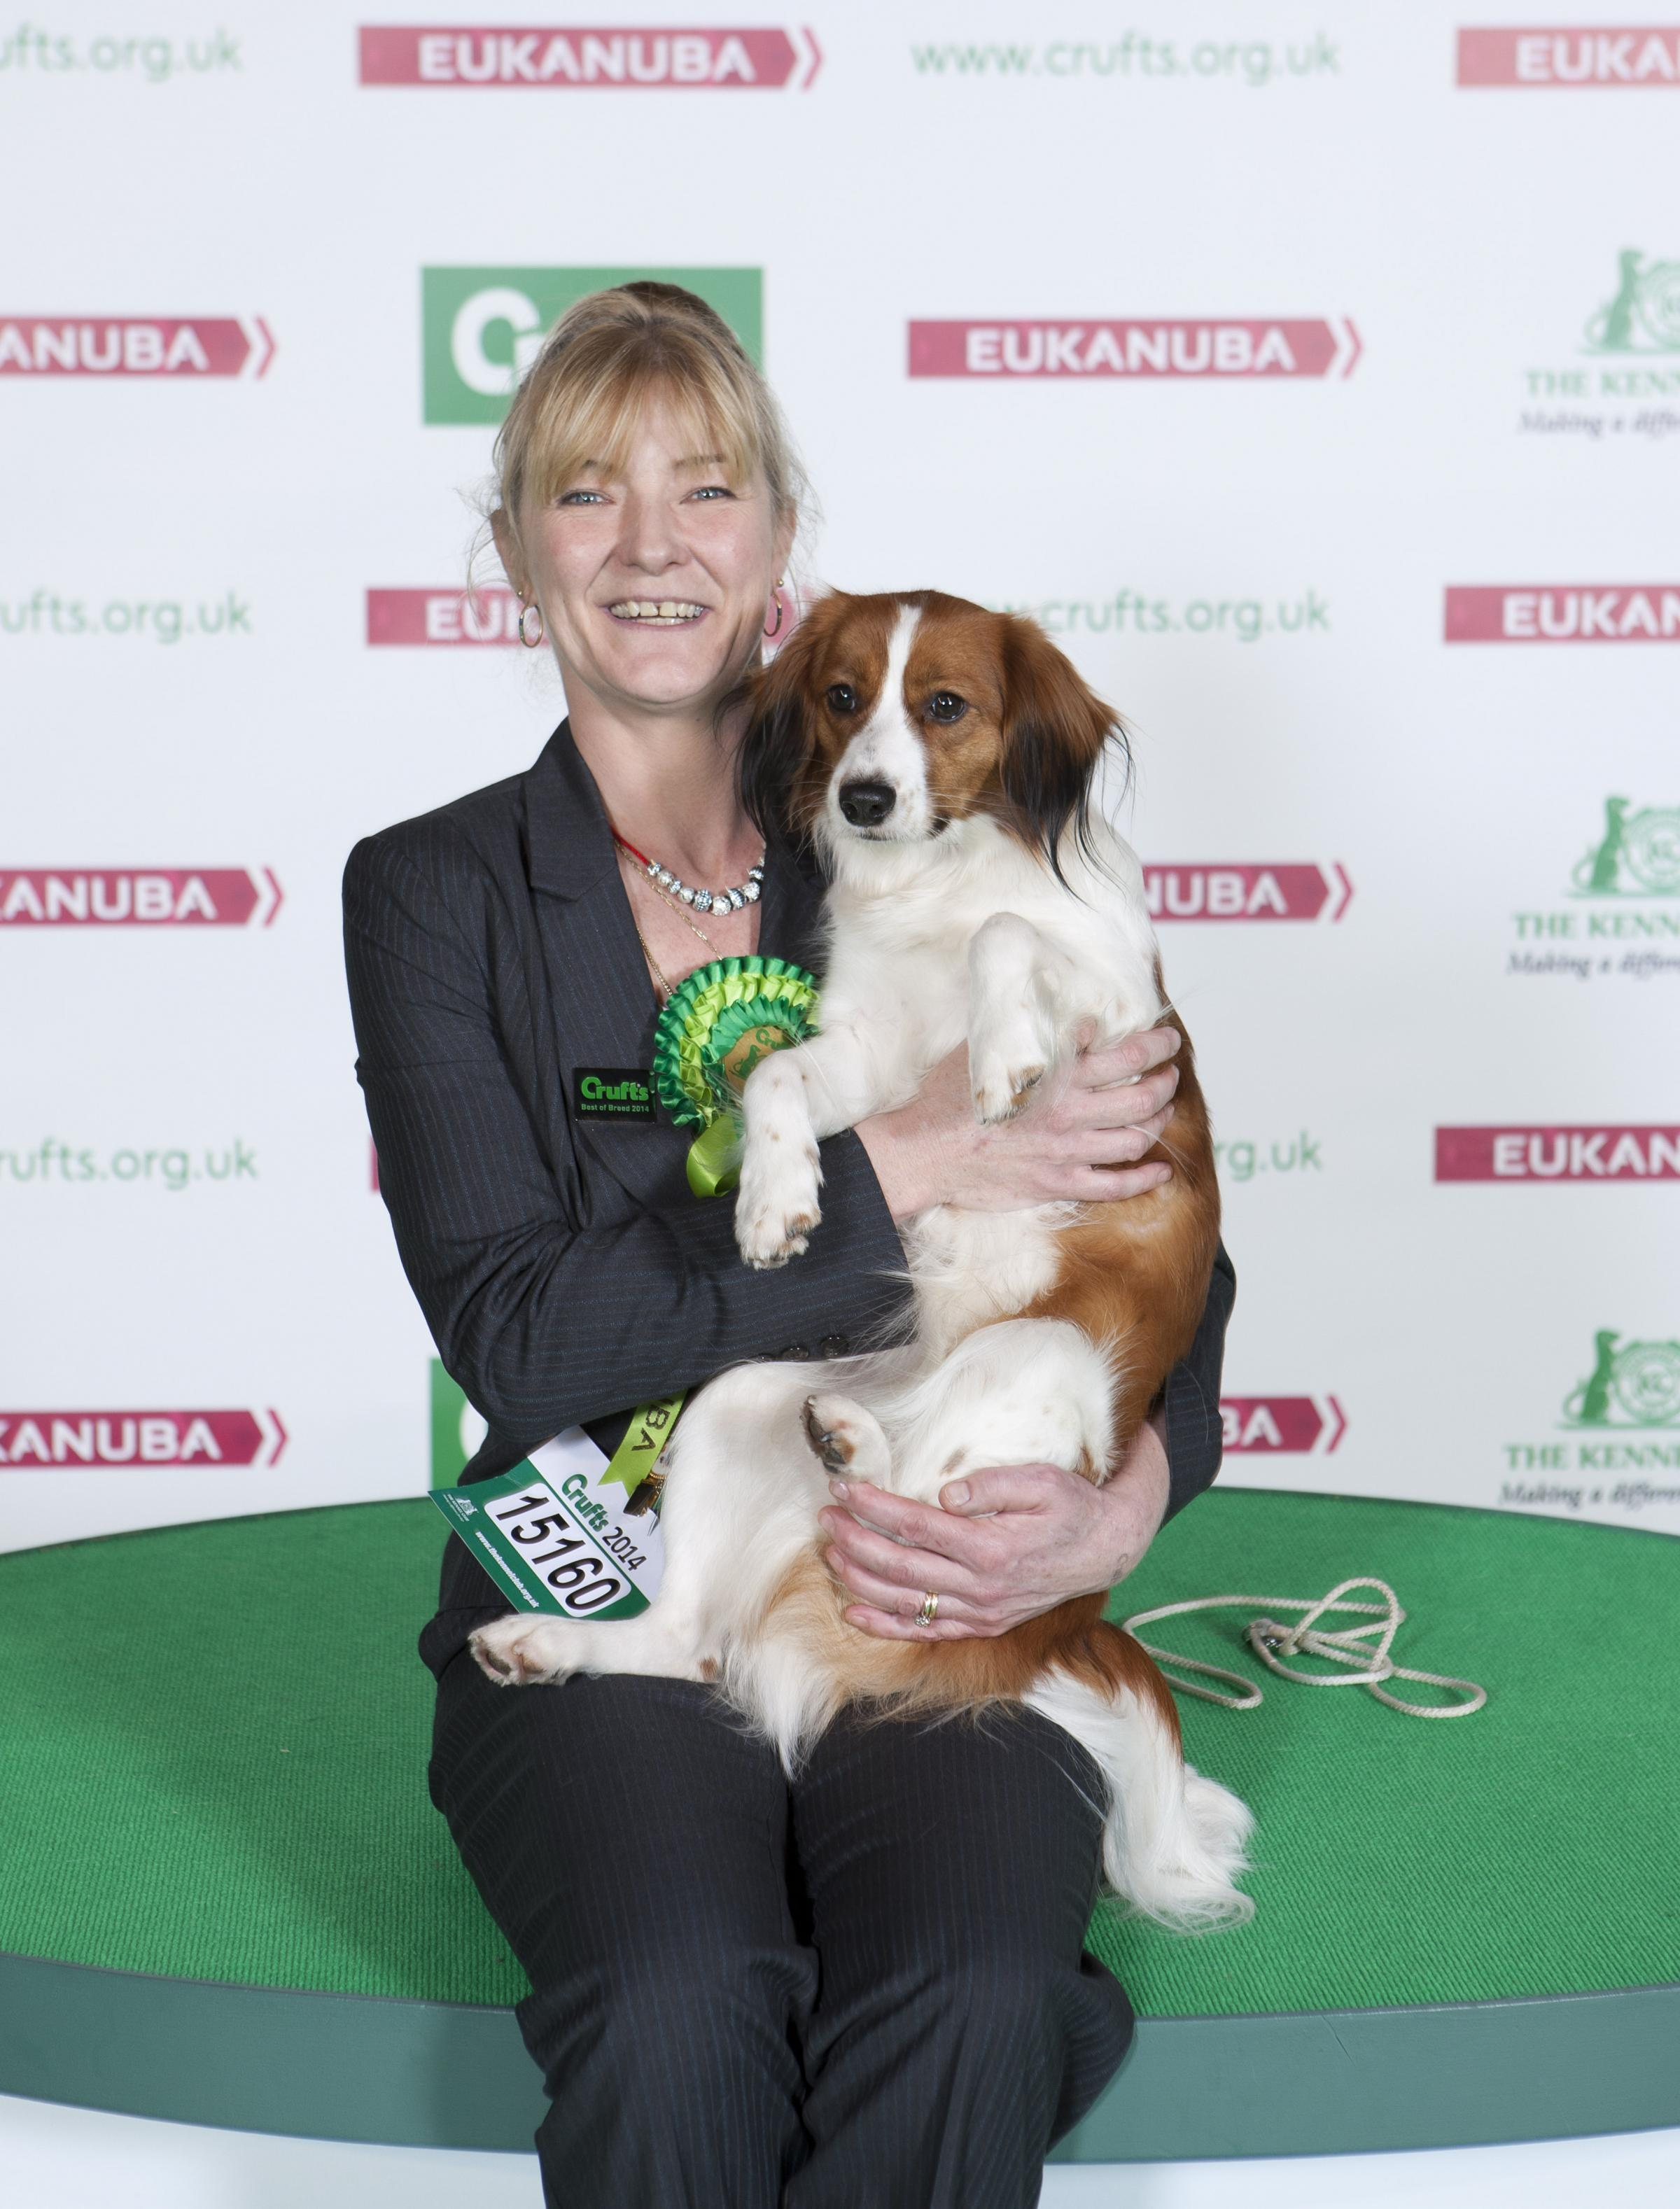 Christina Suiter 49, of Tyndale Road, Cam and 23-moth-old kooikerhondje Freya fought off competition to scoop Best in Breed, Best Bitch and first in post-graduate bitch at Crufts this year.